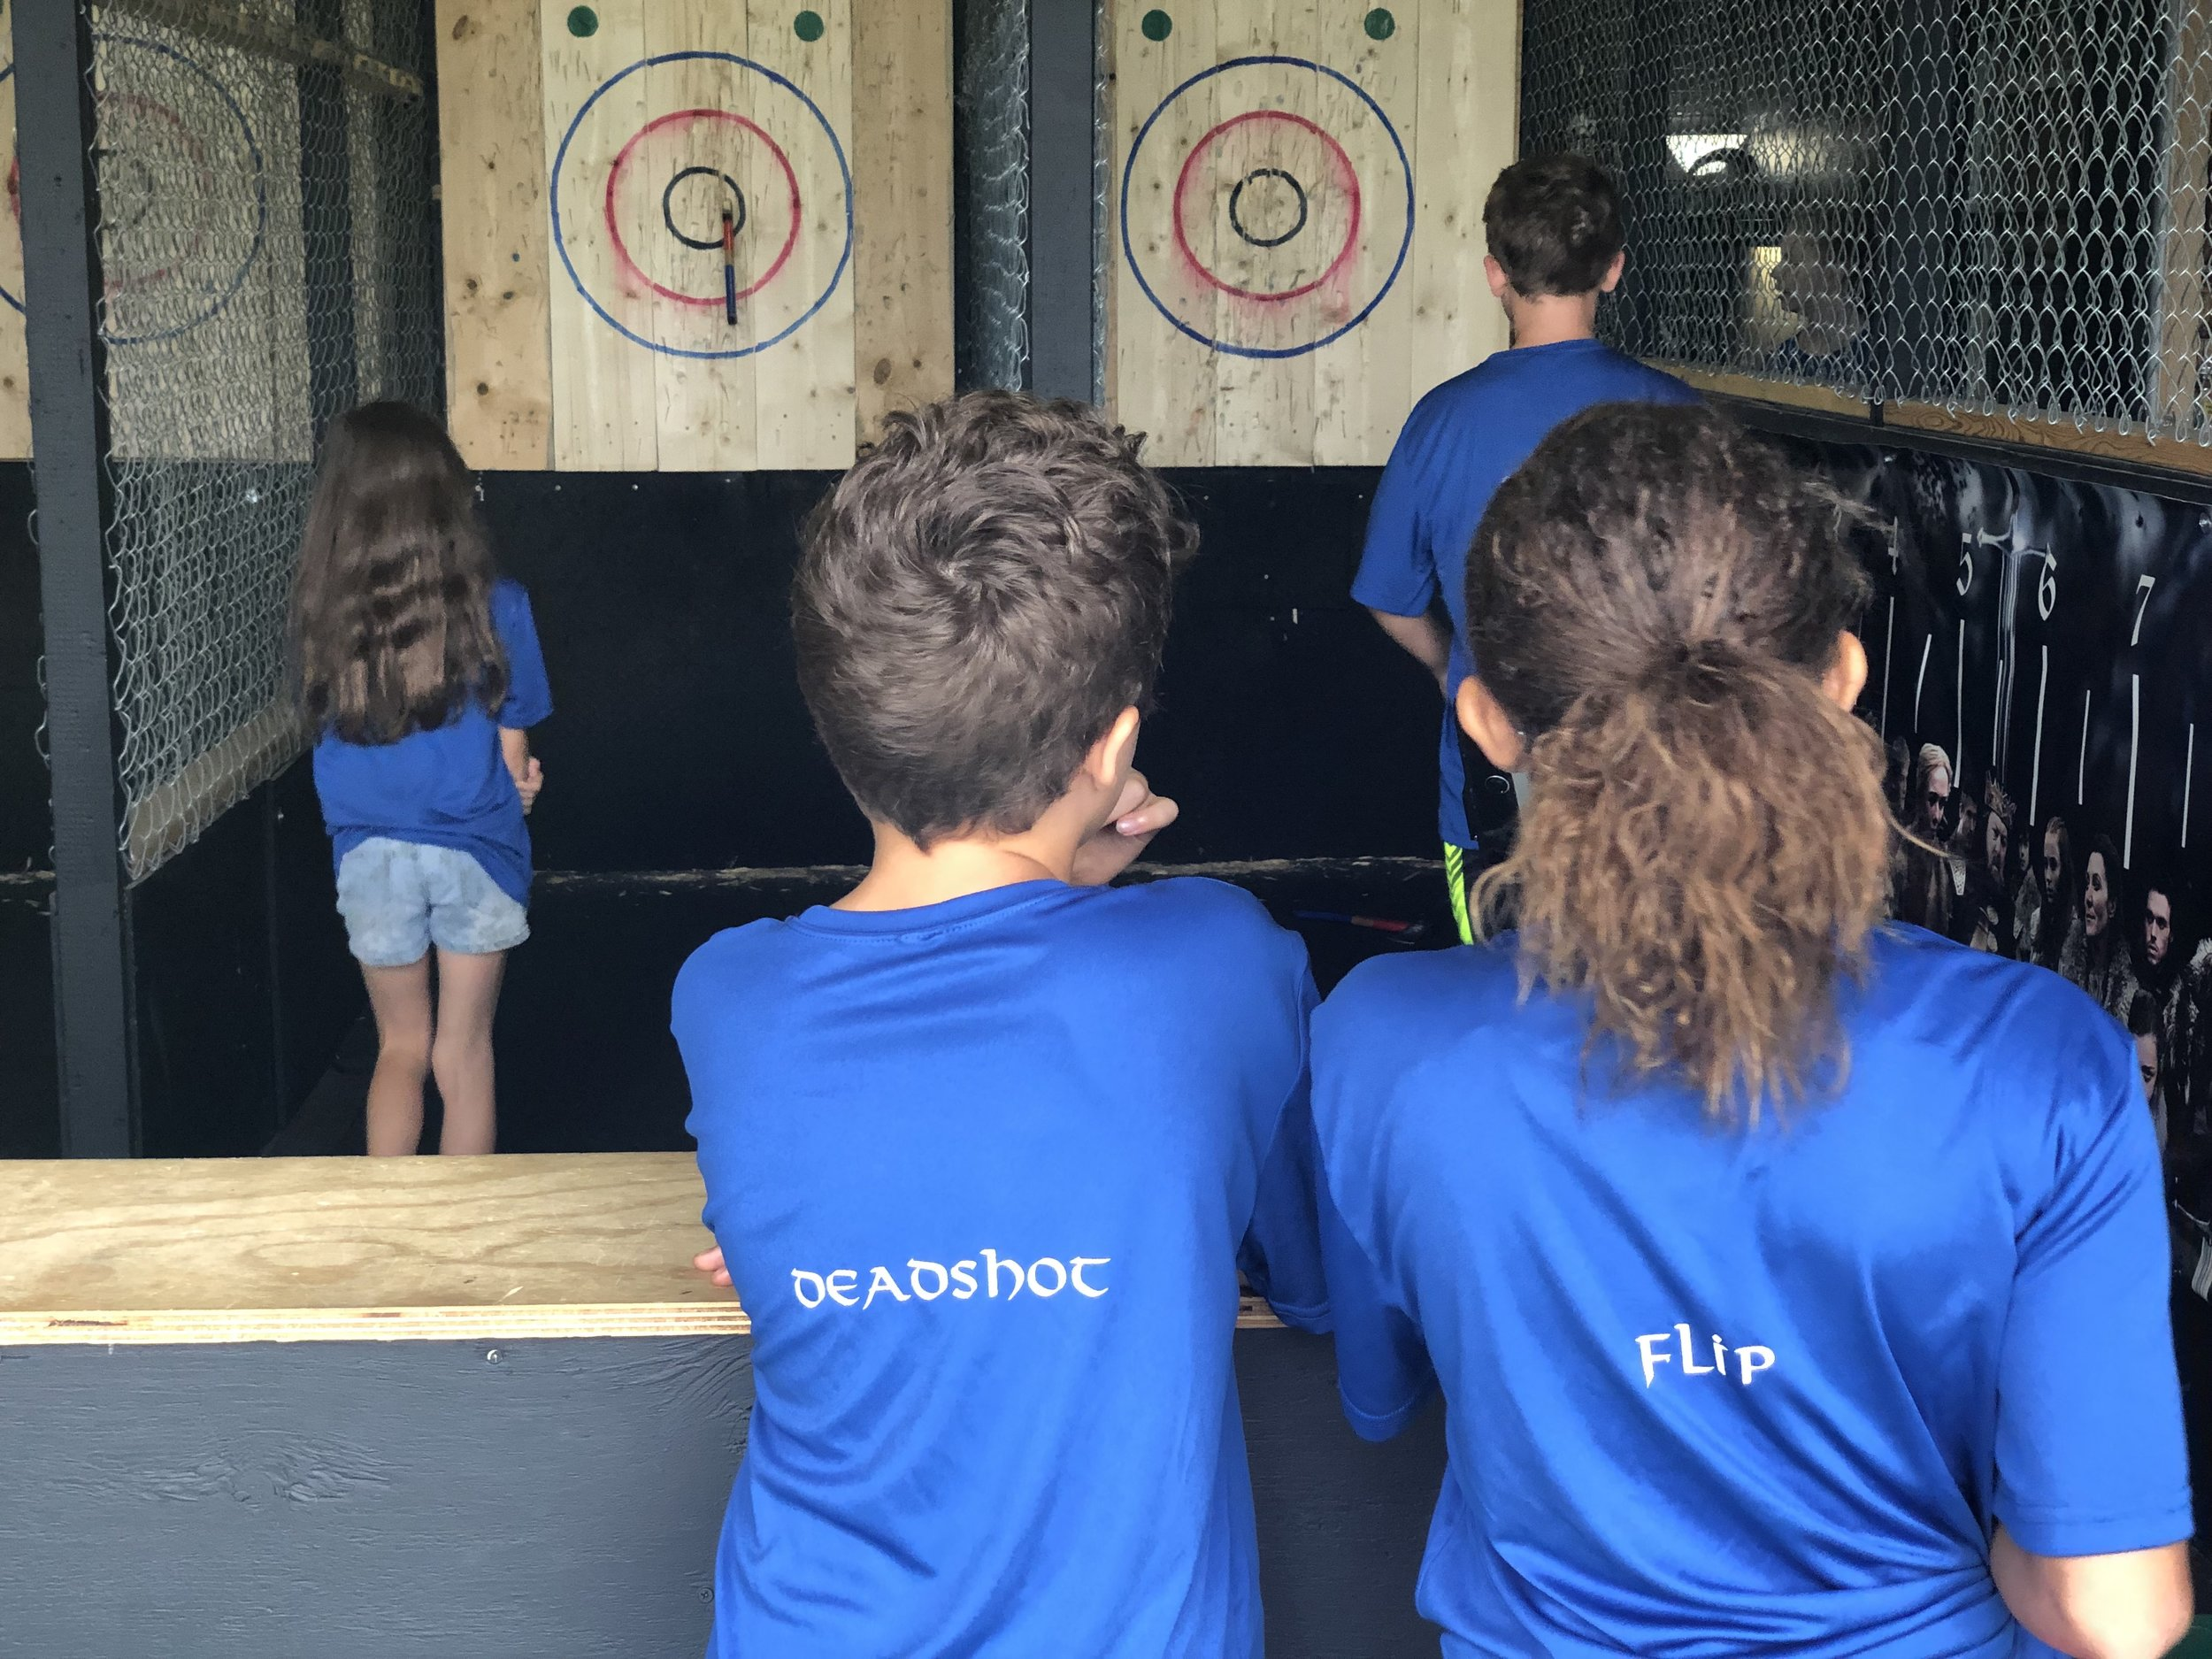 Valhalla's Youth Axe and Archery League - Our next Youth league will begin 9/3/19Tuesdays from 4pm-7pmAges 8-178 week season runs every Tuesday starting 9/3/19. All equipment is provided. Each competitor will receive a personalized team shirt.Limited AvailabilityCost: $150.00- an invoice will be sent to the email you provide. Once your invoice is paid in full, your child's spot will be reserved on the roster.Fill out the form below to get started!